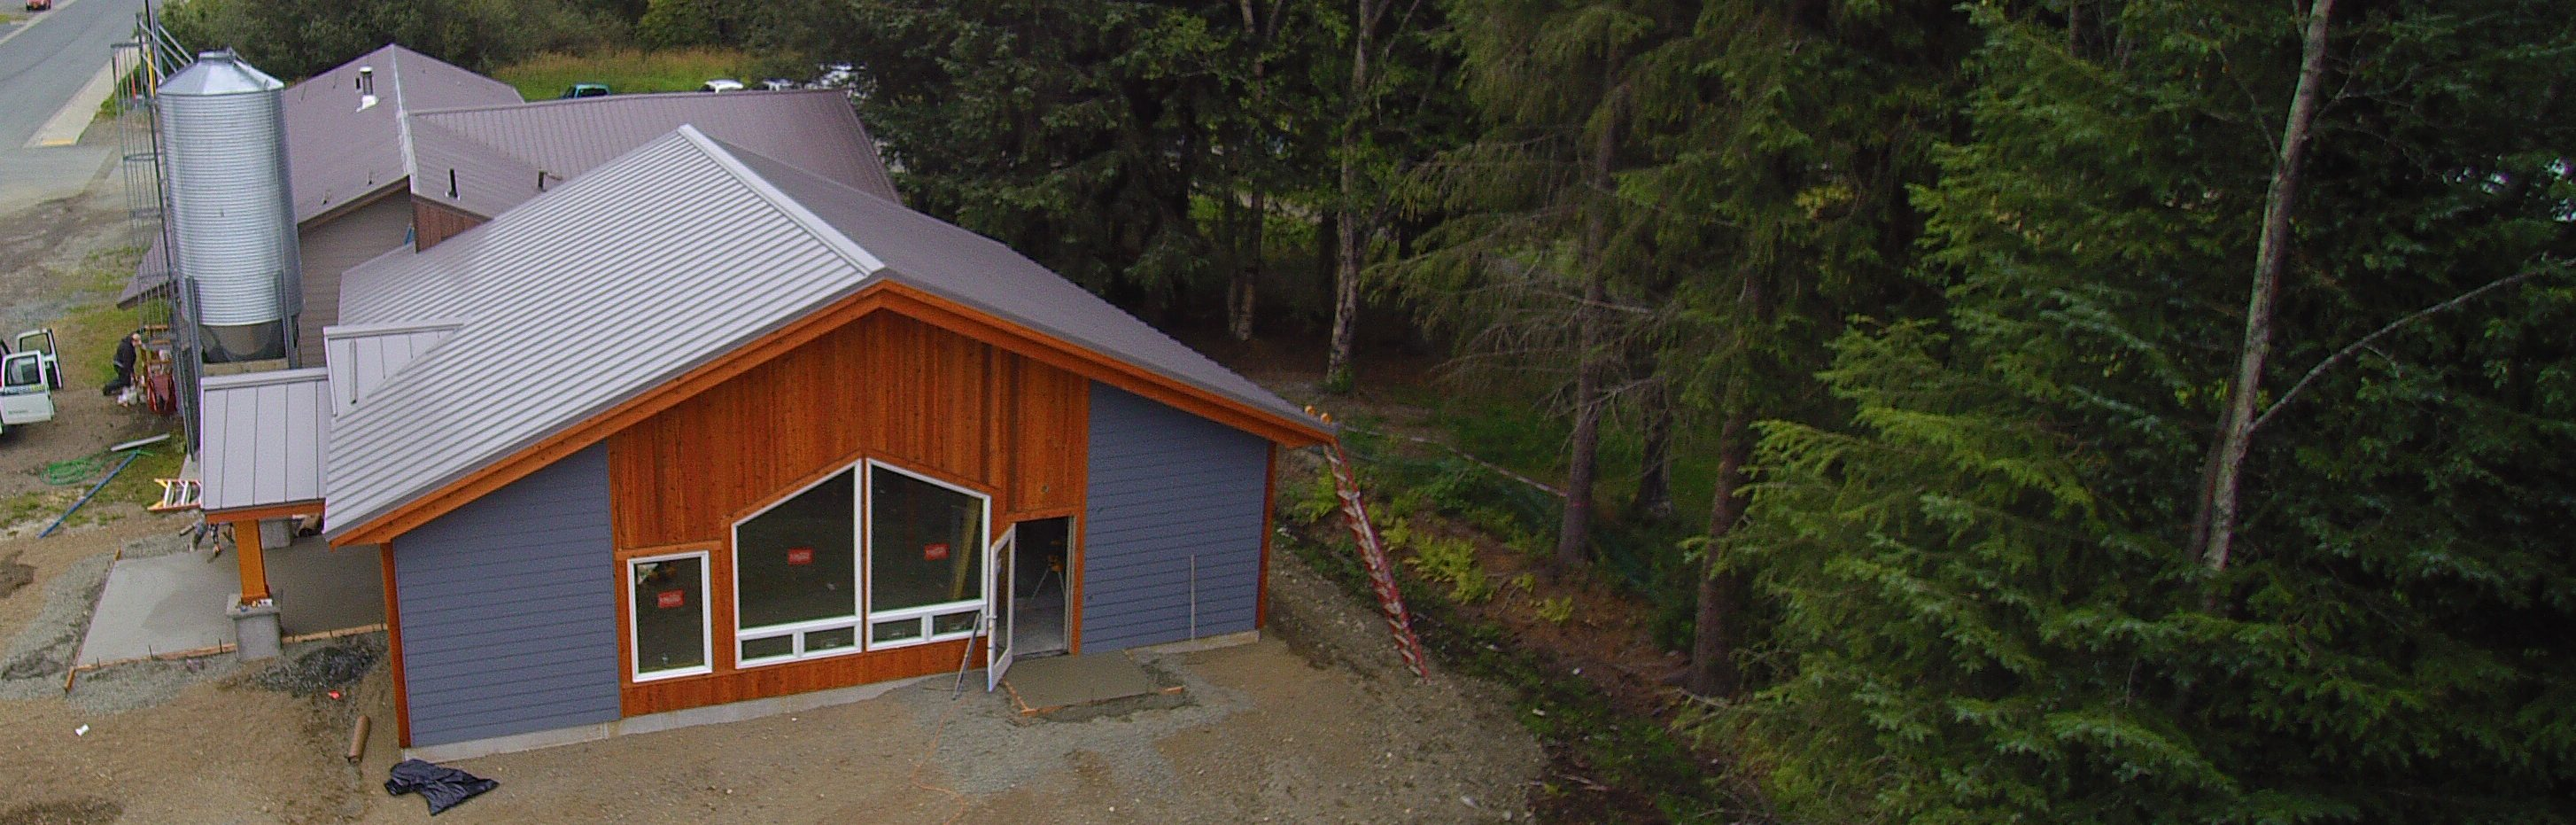 Chilkat Valley Preschool / Haines, AK